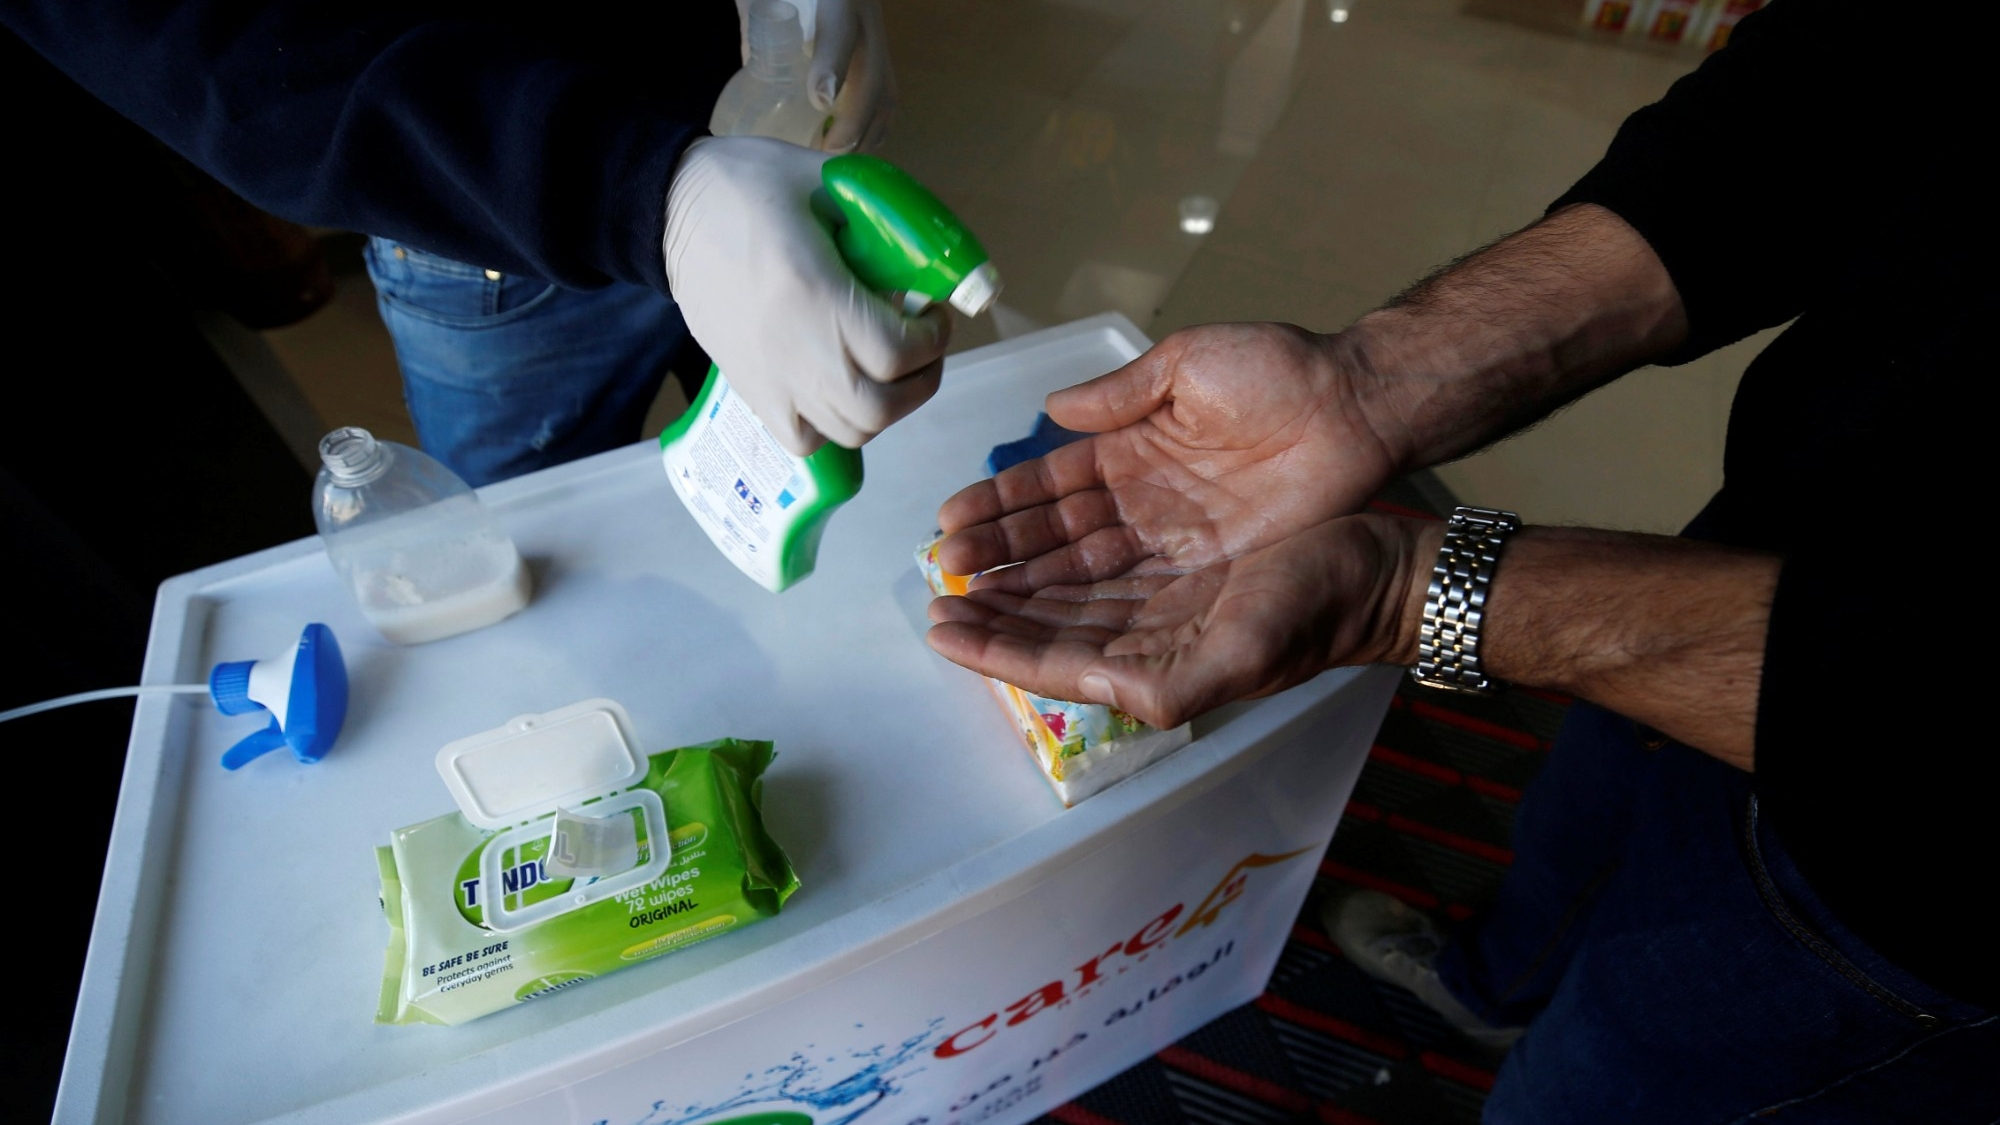 A Palestinian worker sanitizes the hands of a customer at a supermarket in Gaza City, March 8, 2020, photo by Mohammed Salem/Reuters